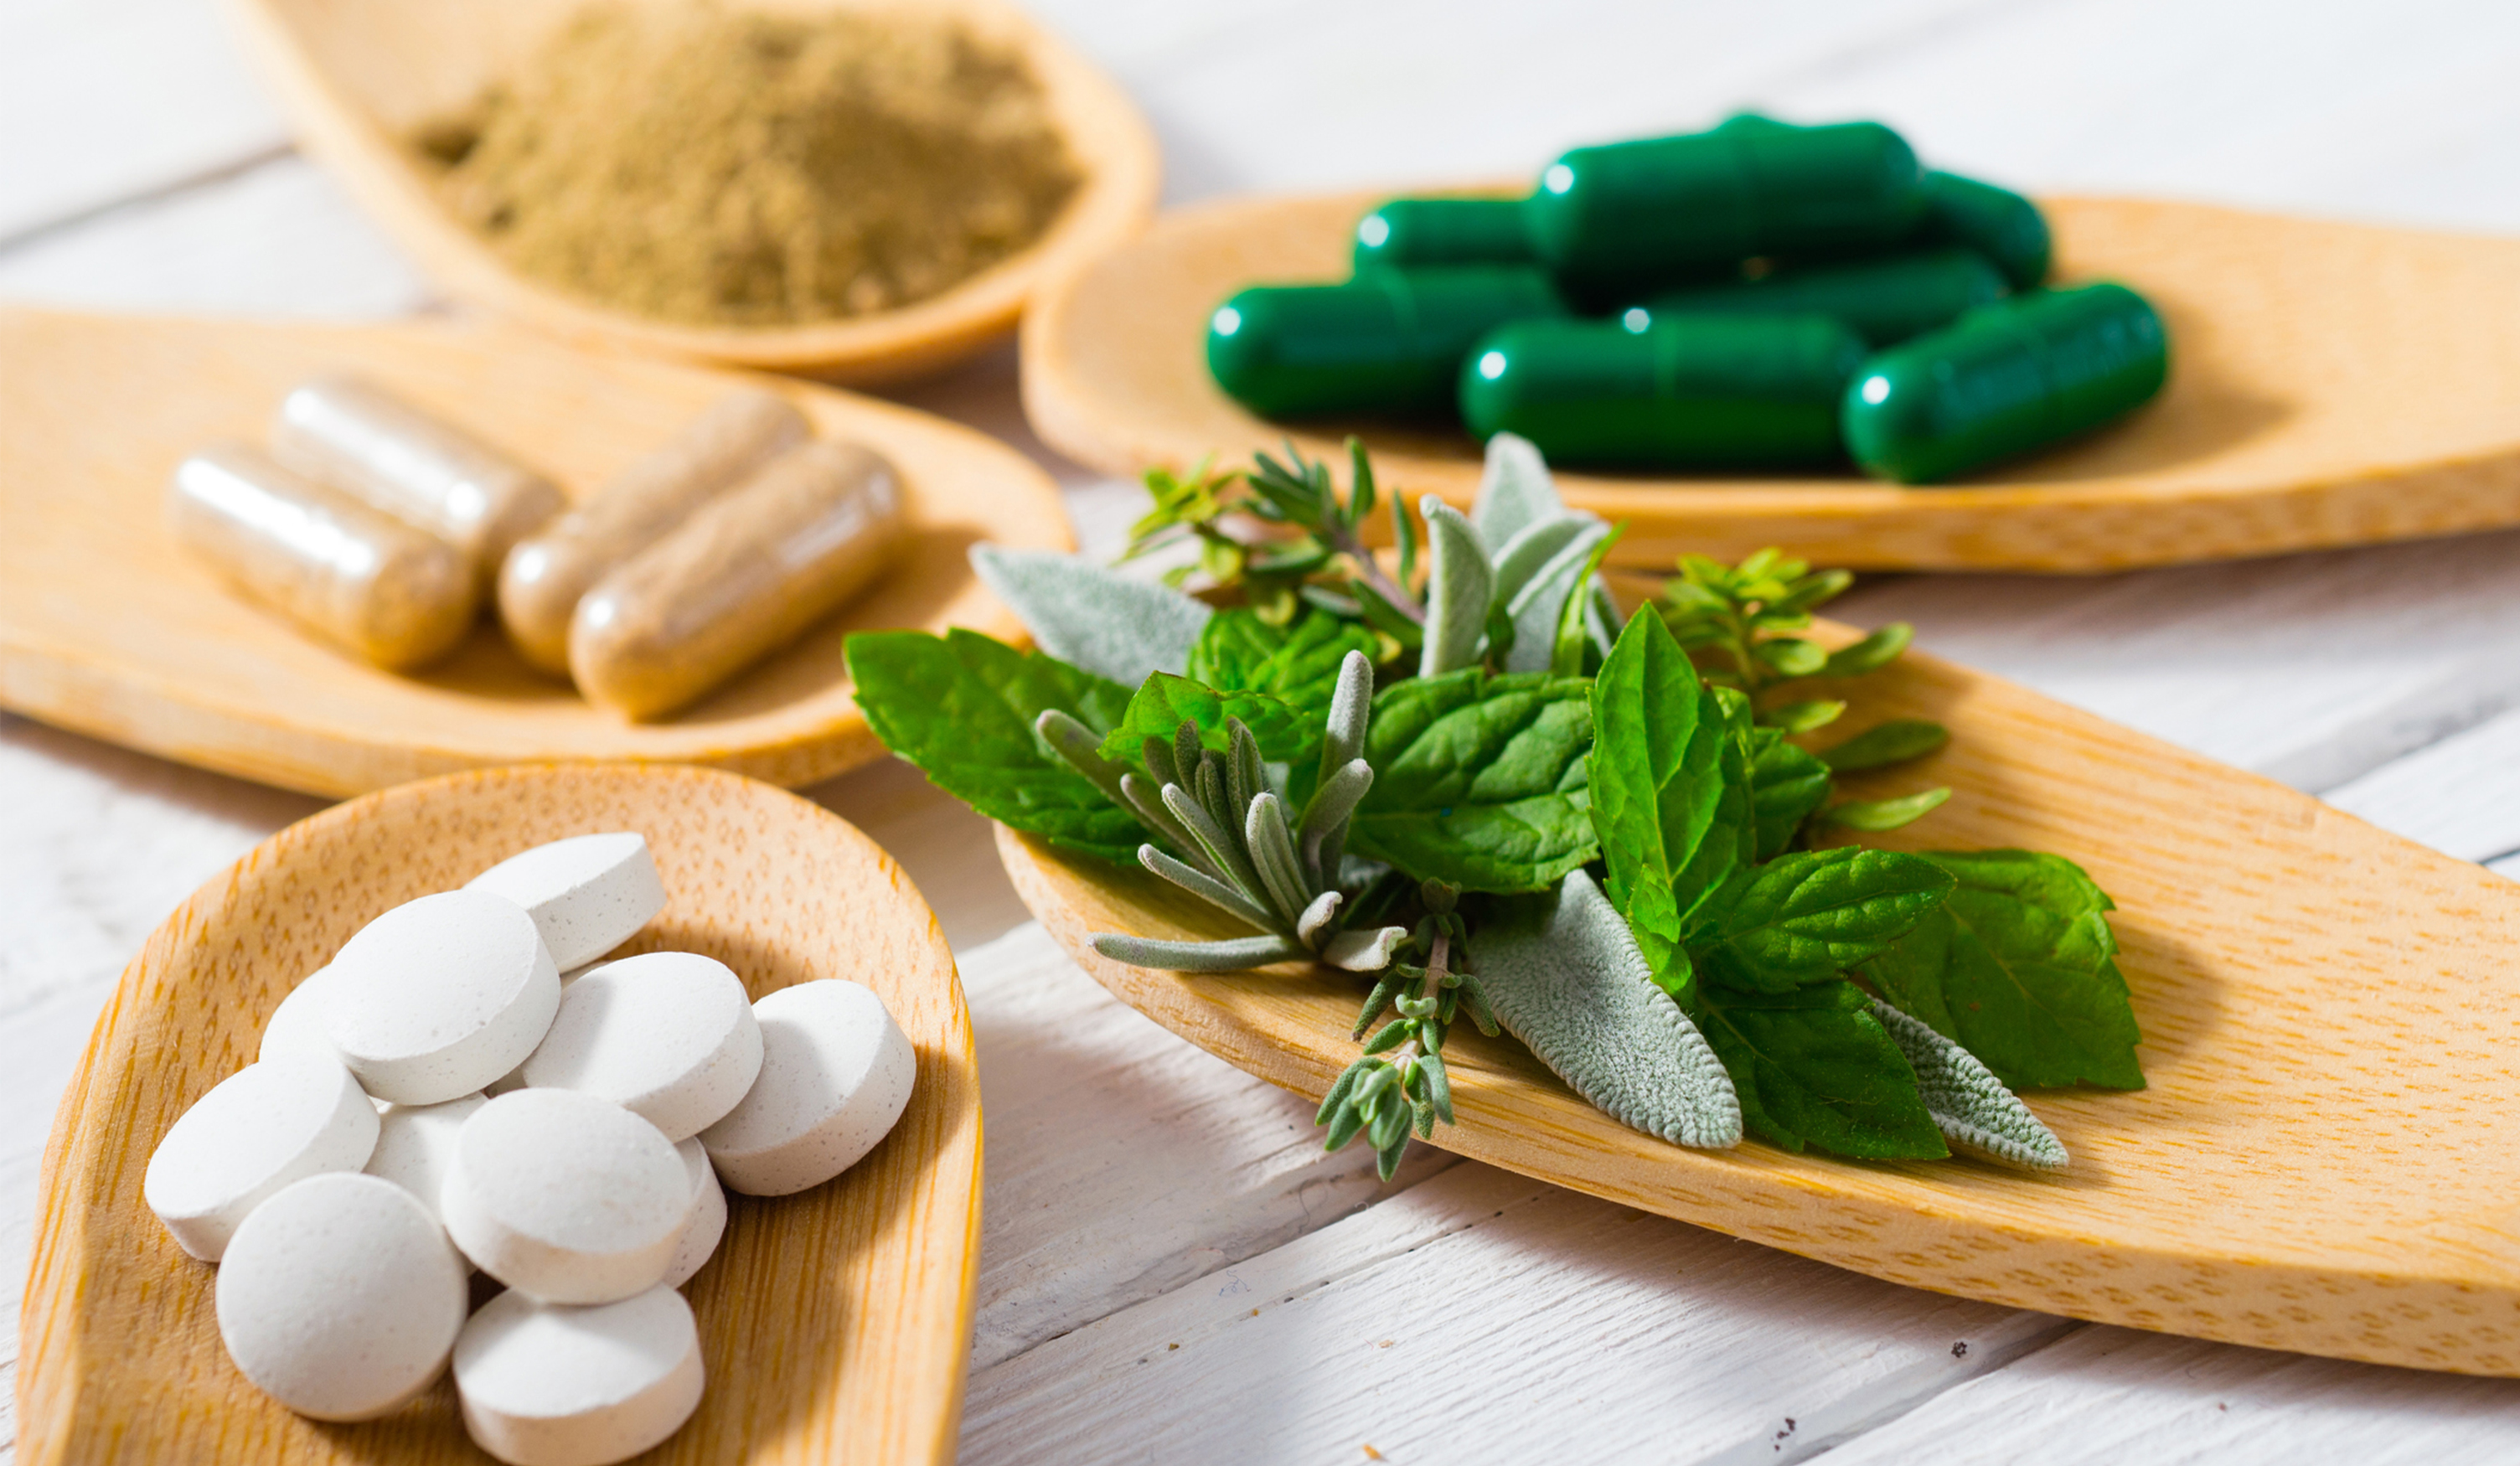 Ashwagandha (Withania somnifera), Echinacea (Echniacea spp.), Saw palmetto (Serenoa repens), Collagen, Lutein, Spearmint Extract, botanicals, protein, heart, cardiovasular, immune support, immune health, gastrointesinal health, chicory inulin, seaweed extract, health and beauty, brain health, joint health, sports, energy, bone health, Algae Powder with Tocopherols Apple Cider Vinegar Powder